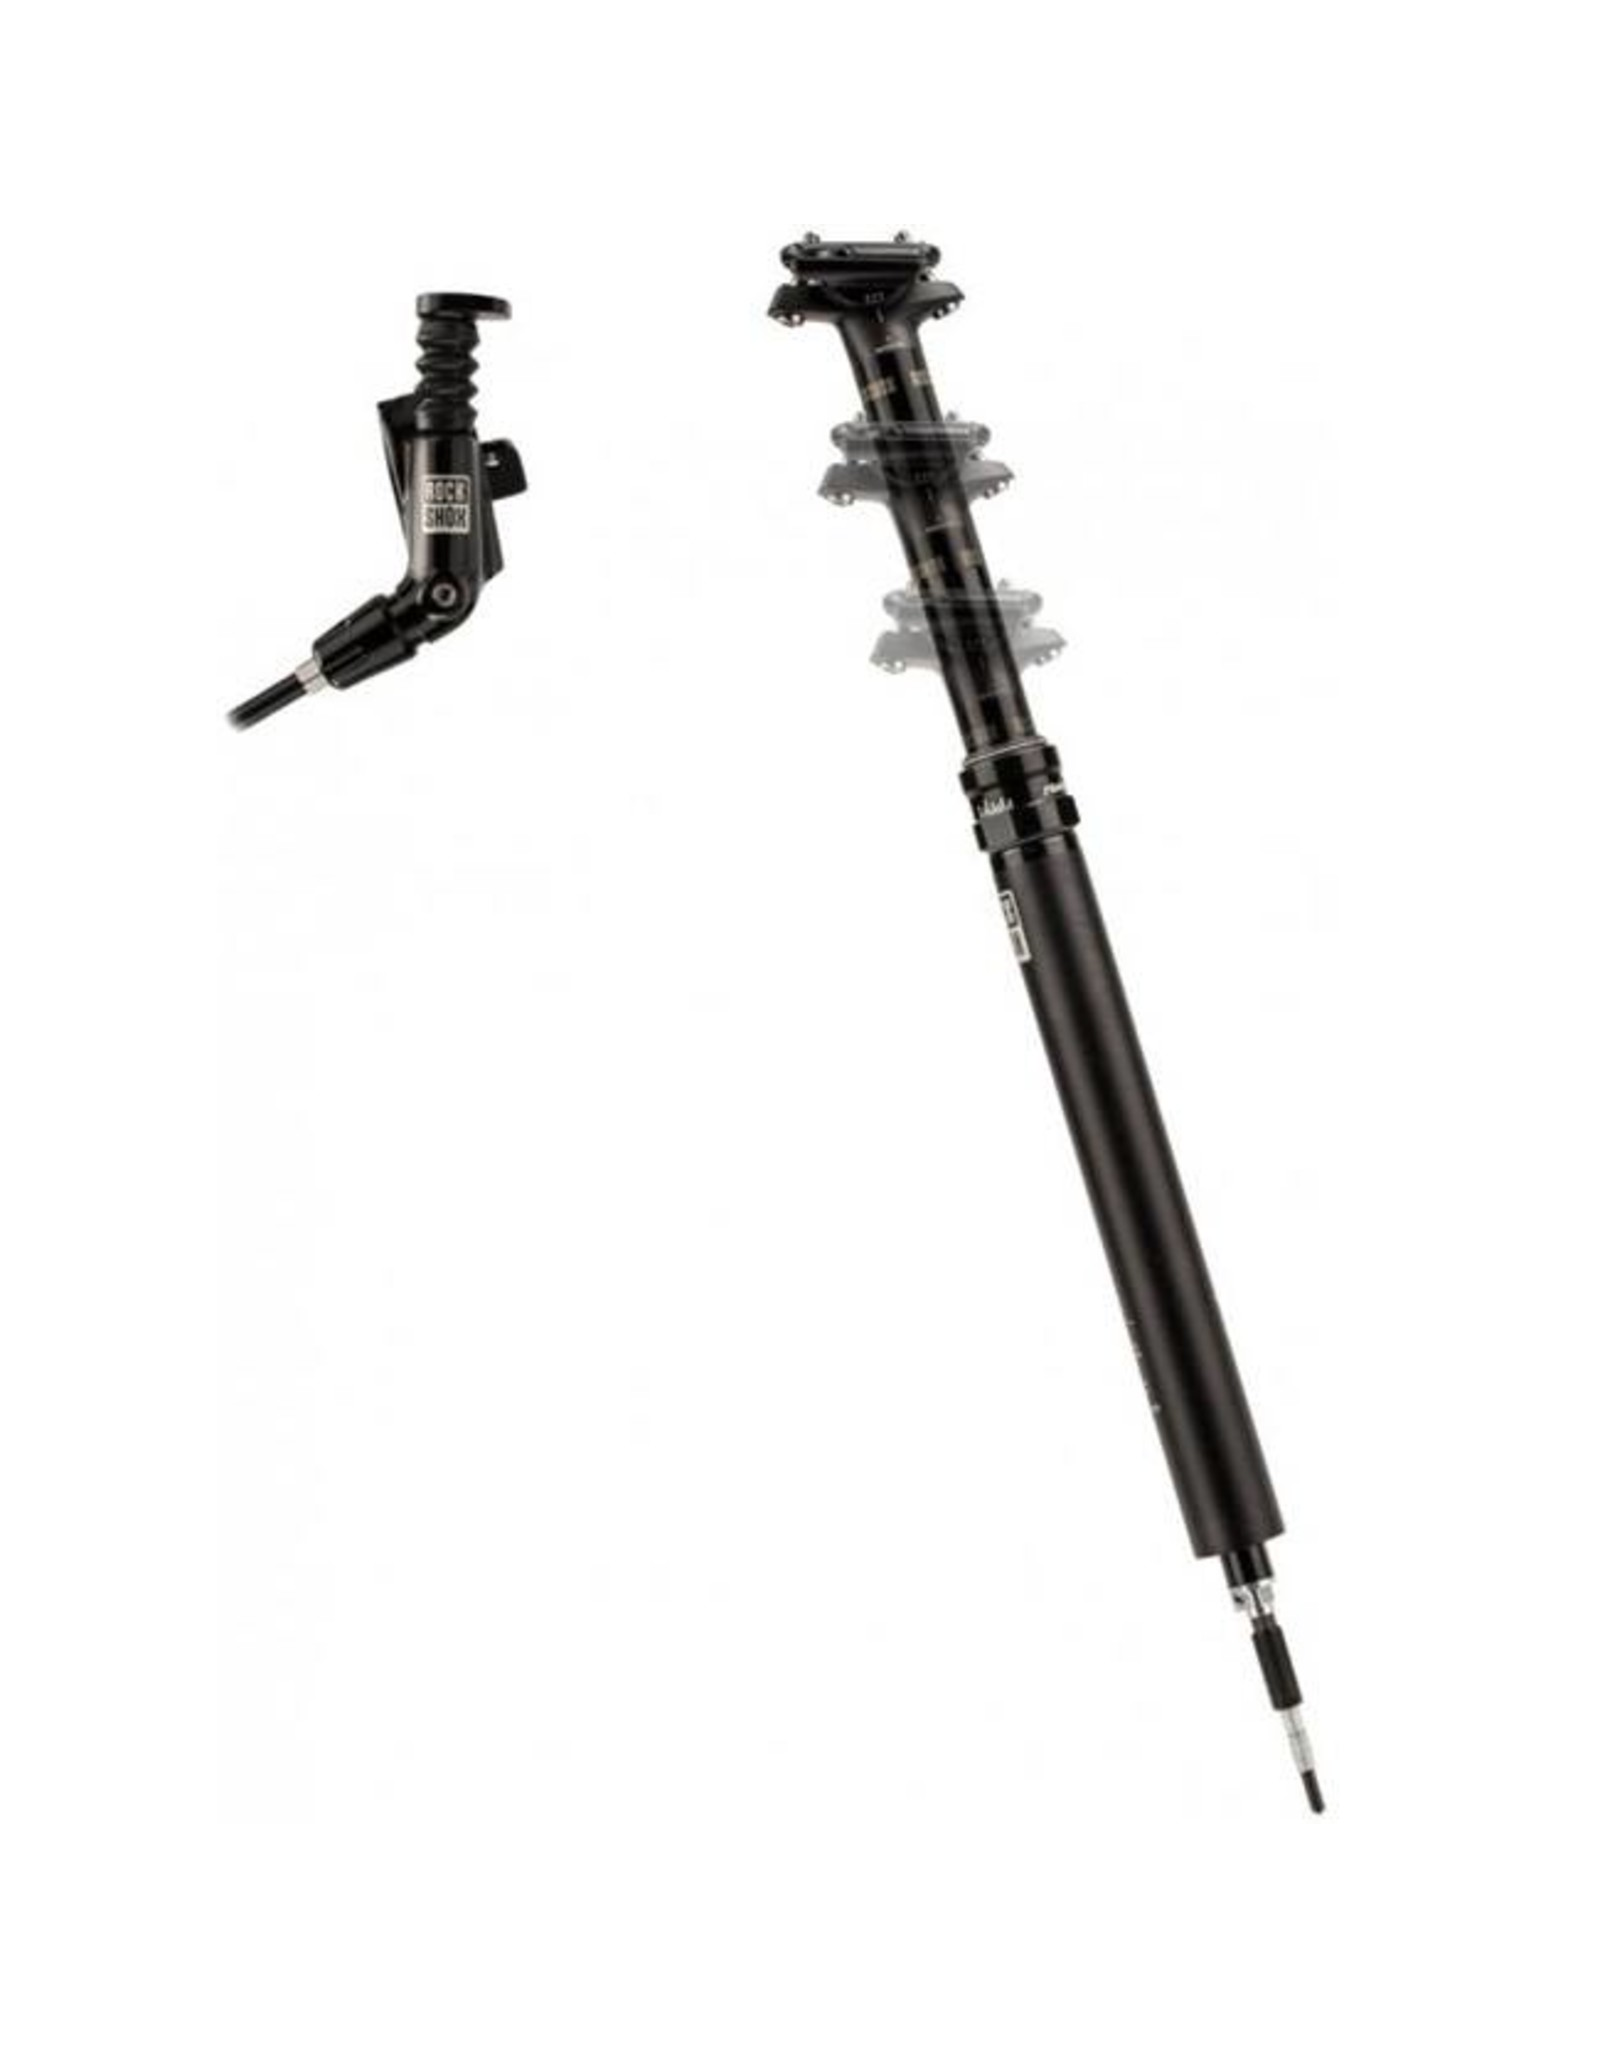 Rockshox RockShox Reverb Stealth 31.6 x 390mm Dropper Post, 125mm Travel, MMX Left, B1